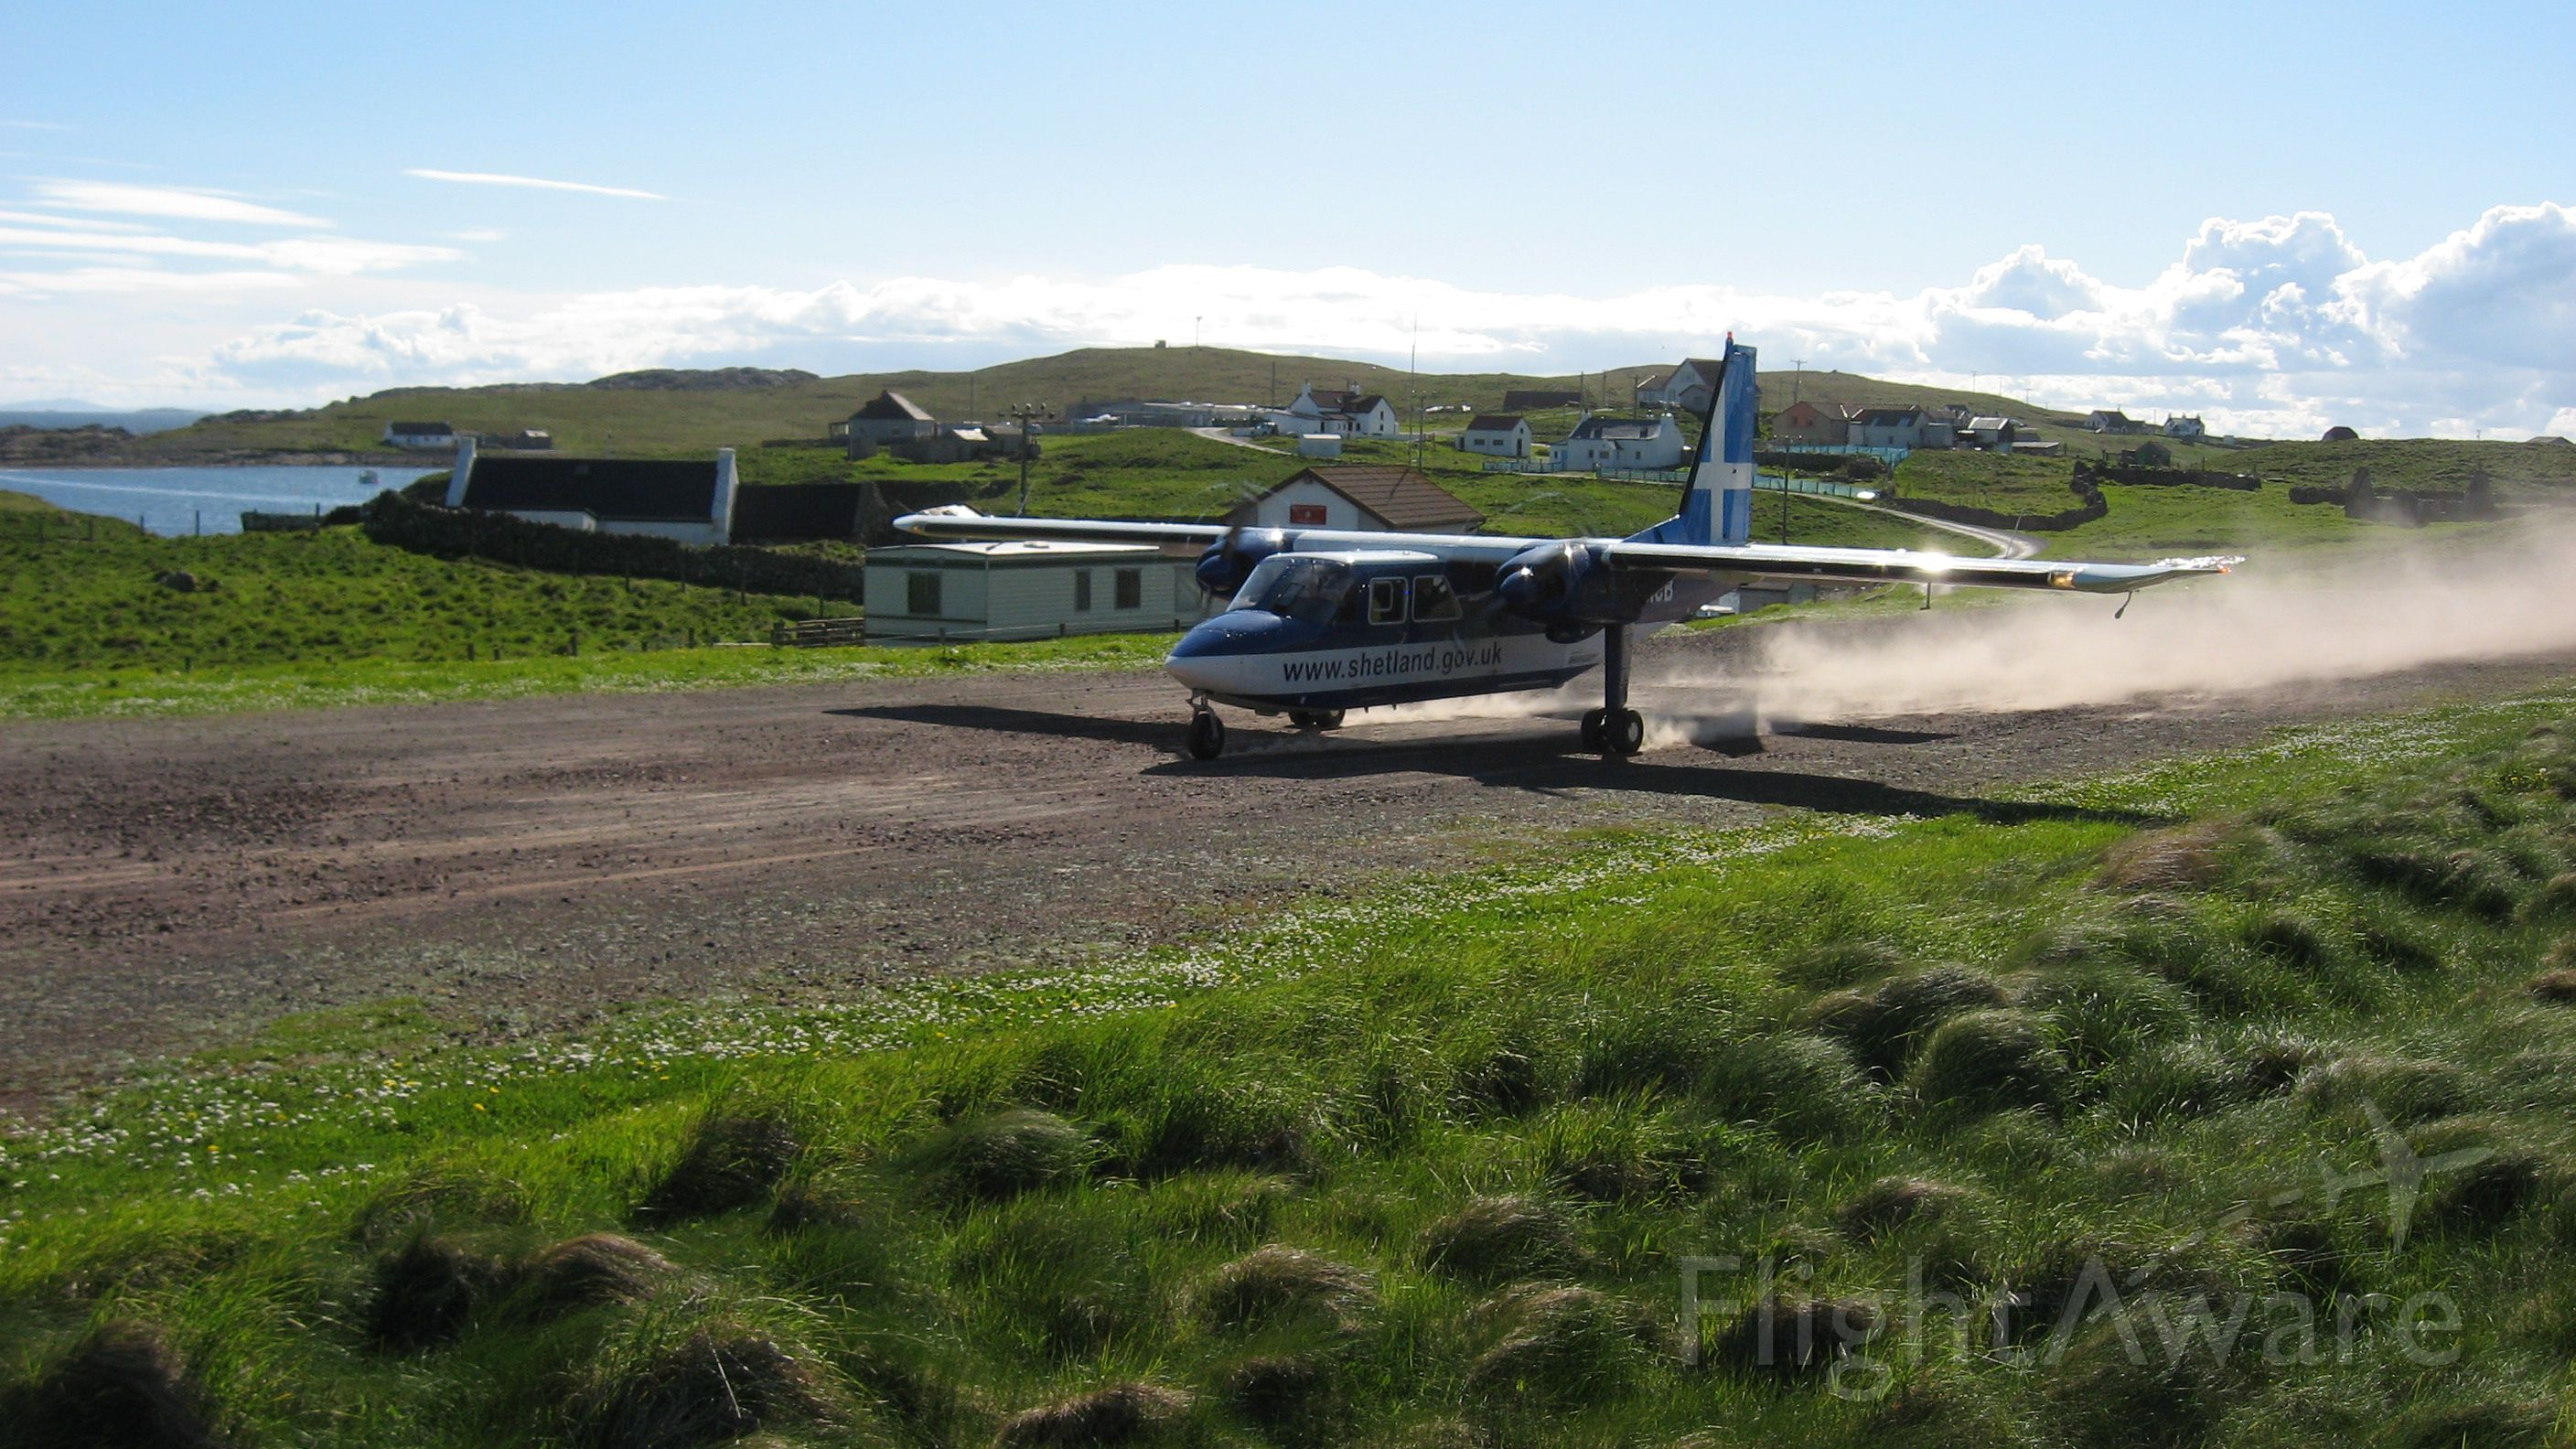 G-SICB — - BNA2 take off at Out Skerries, 1246 ft runway